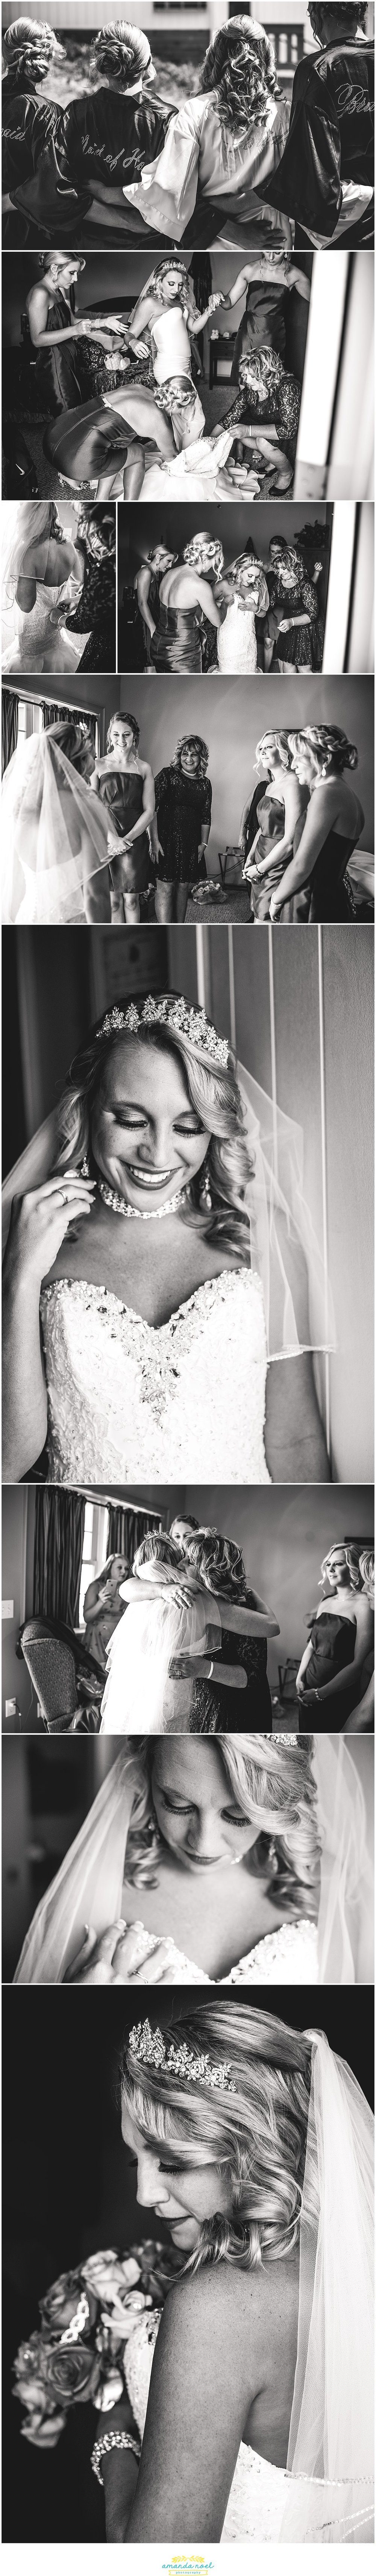 Springfield Ohio wedding bride getting ready black and white